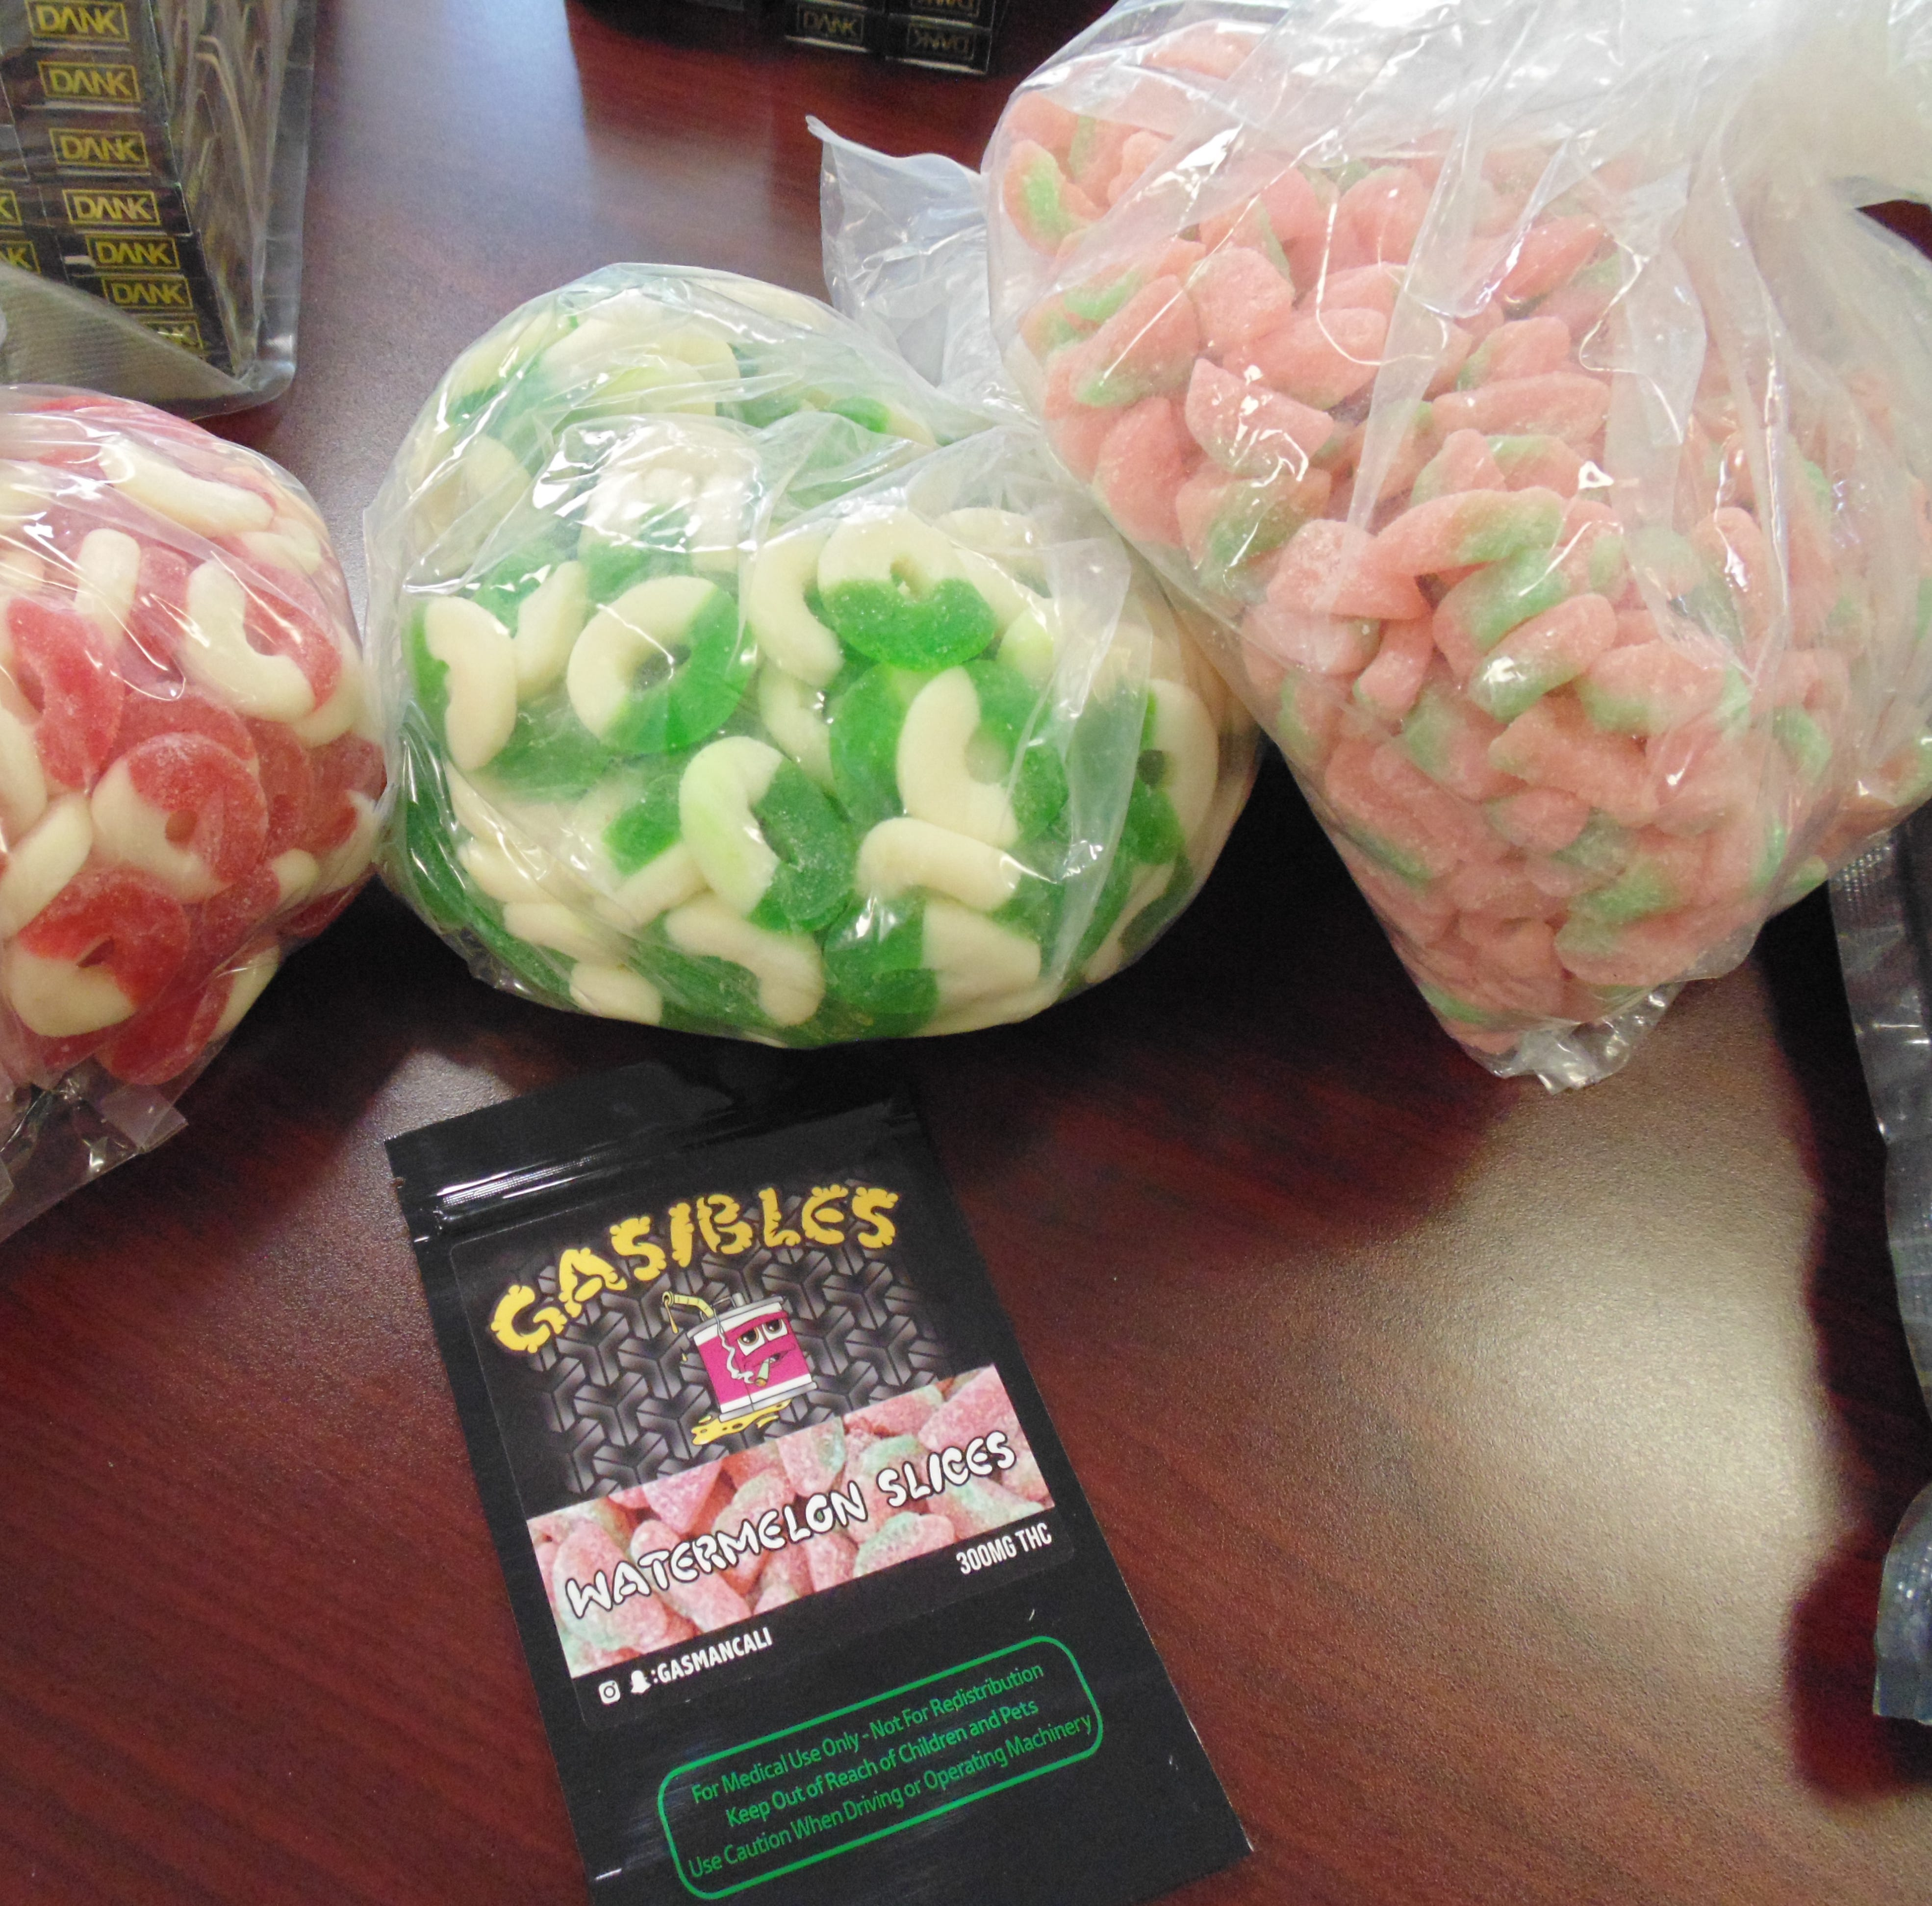 Hamilton County Sheriff's Office urges vigilance after recovery of THC laced gummy worms, other narcotics